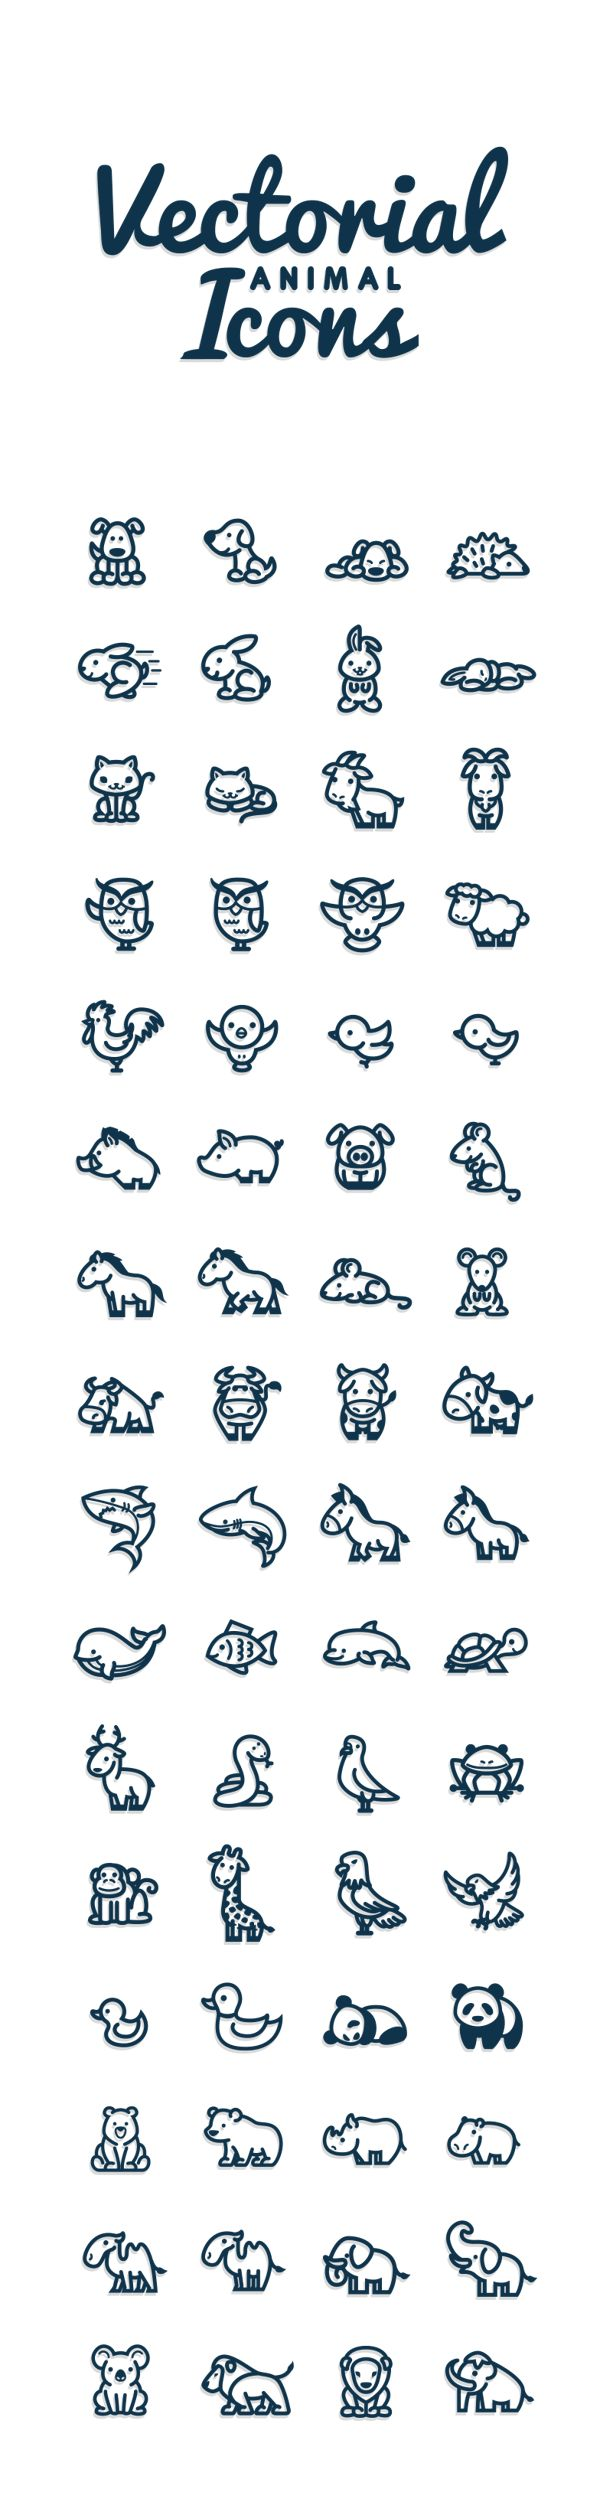 Vectorial Animals by Bodea Daniel, via Behance